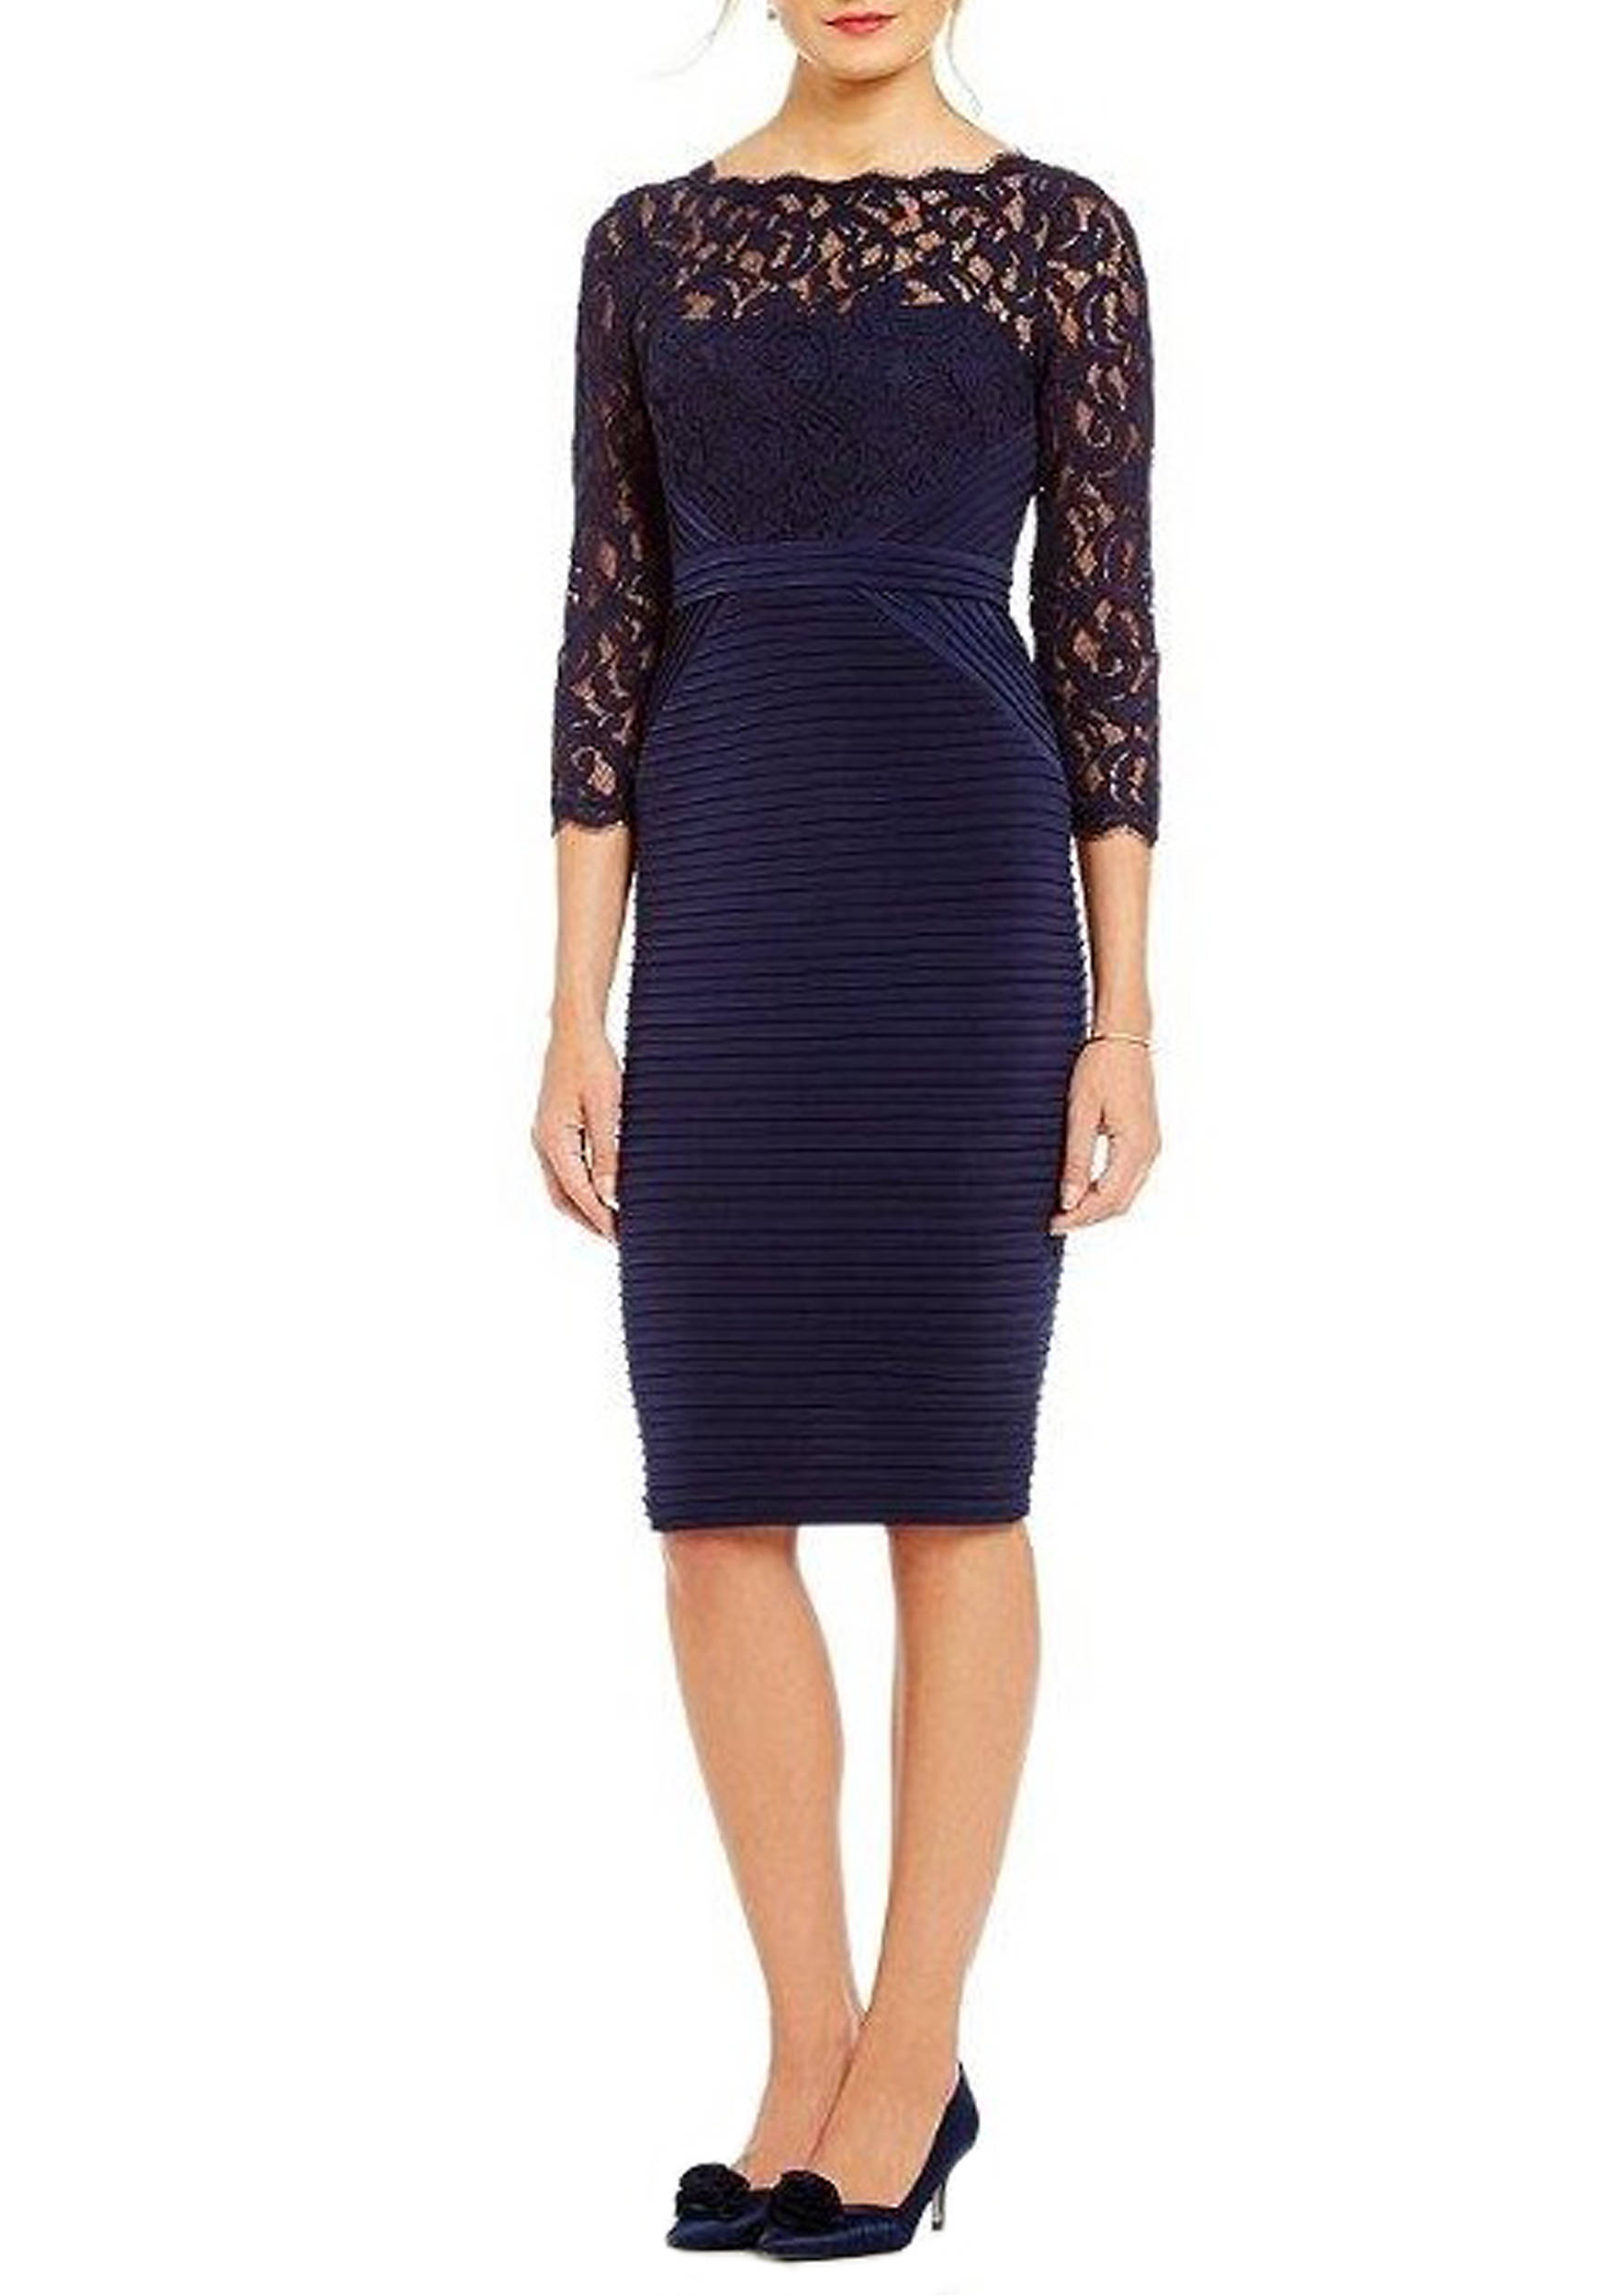 Adrianna Papell Jersey And Lace Cocktail Dress   belk